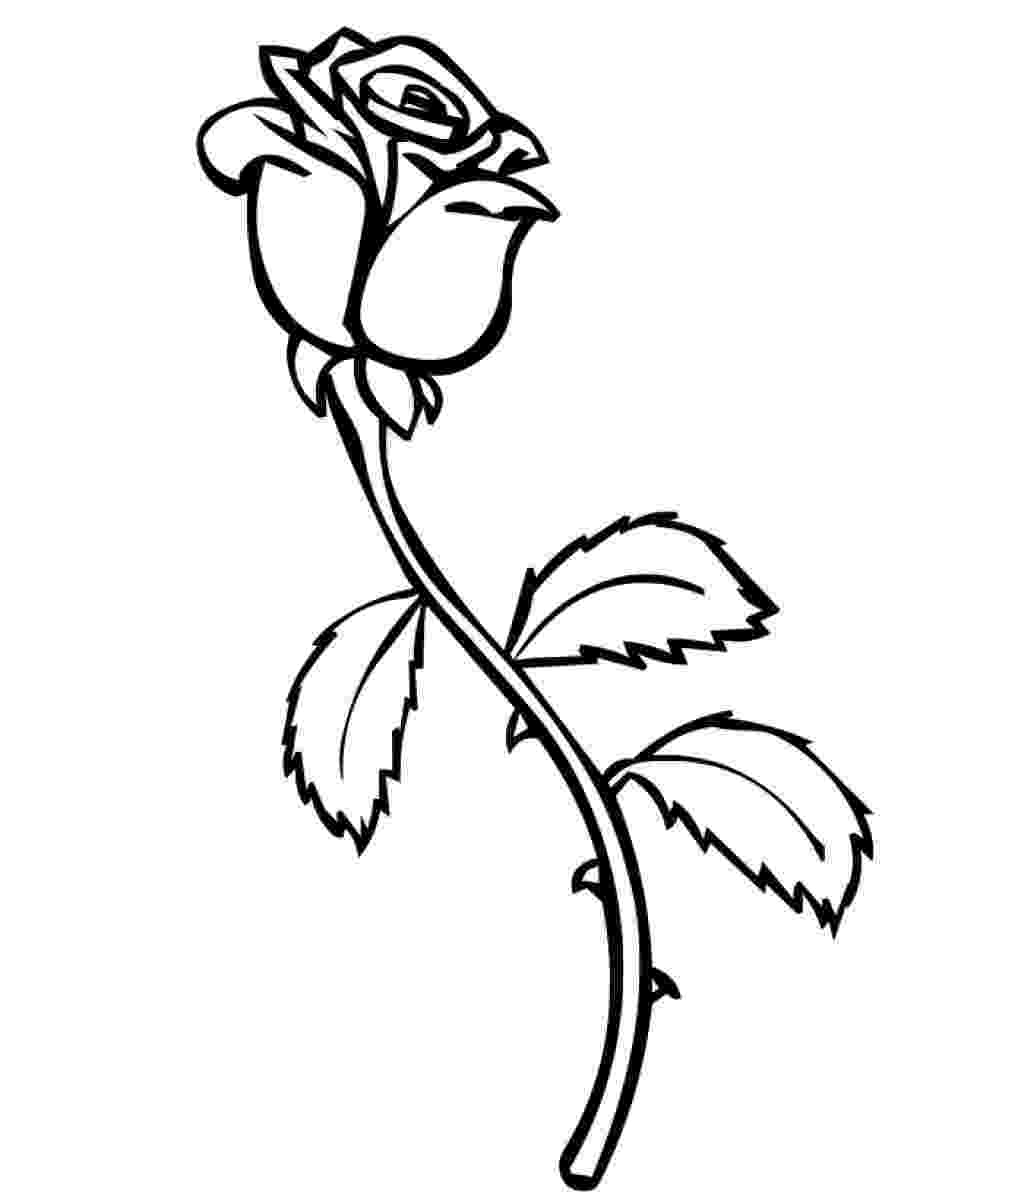 printable roses free printable flower coloring pages for kids best printable roses